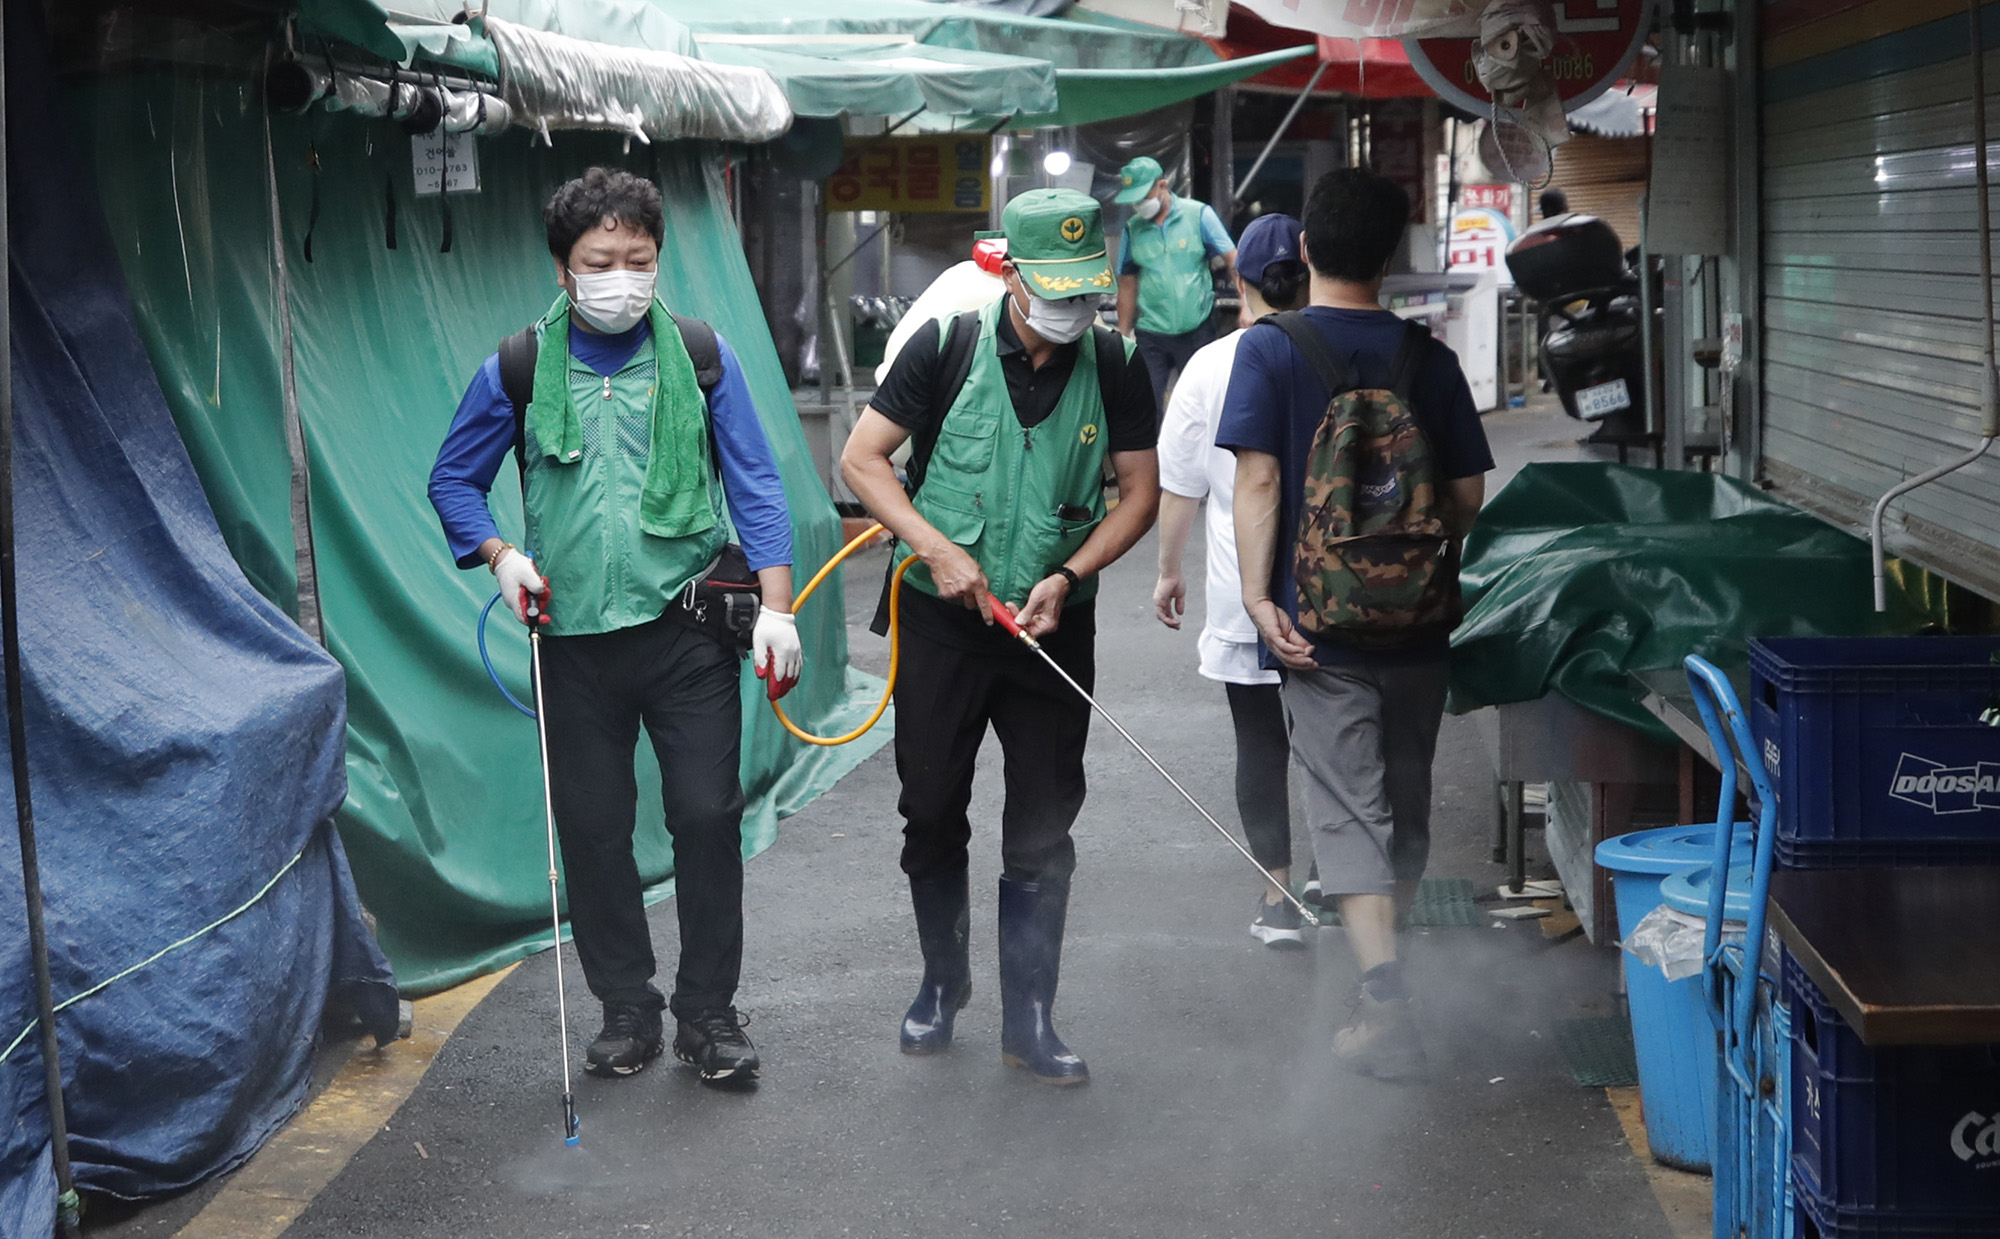 People disinfect as a precaution against the coronavirus at a local market in Seoul, South Korea, on Wednesday, September 2.